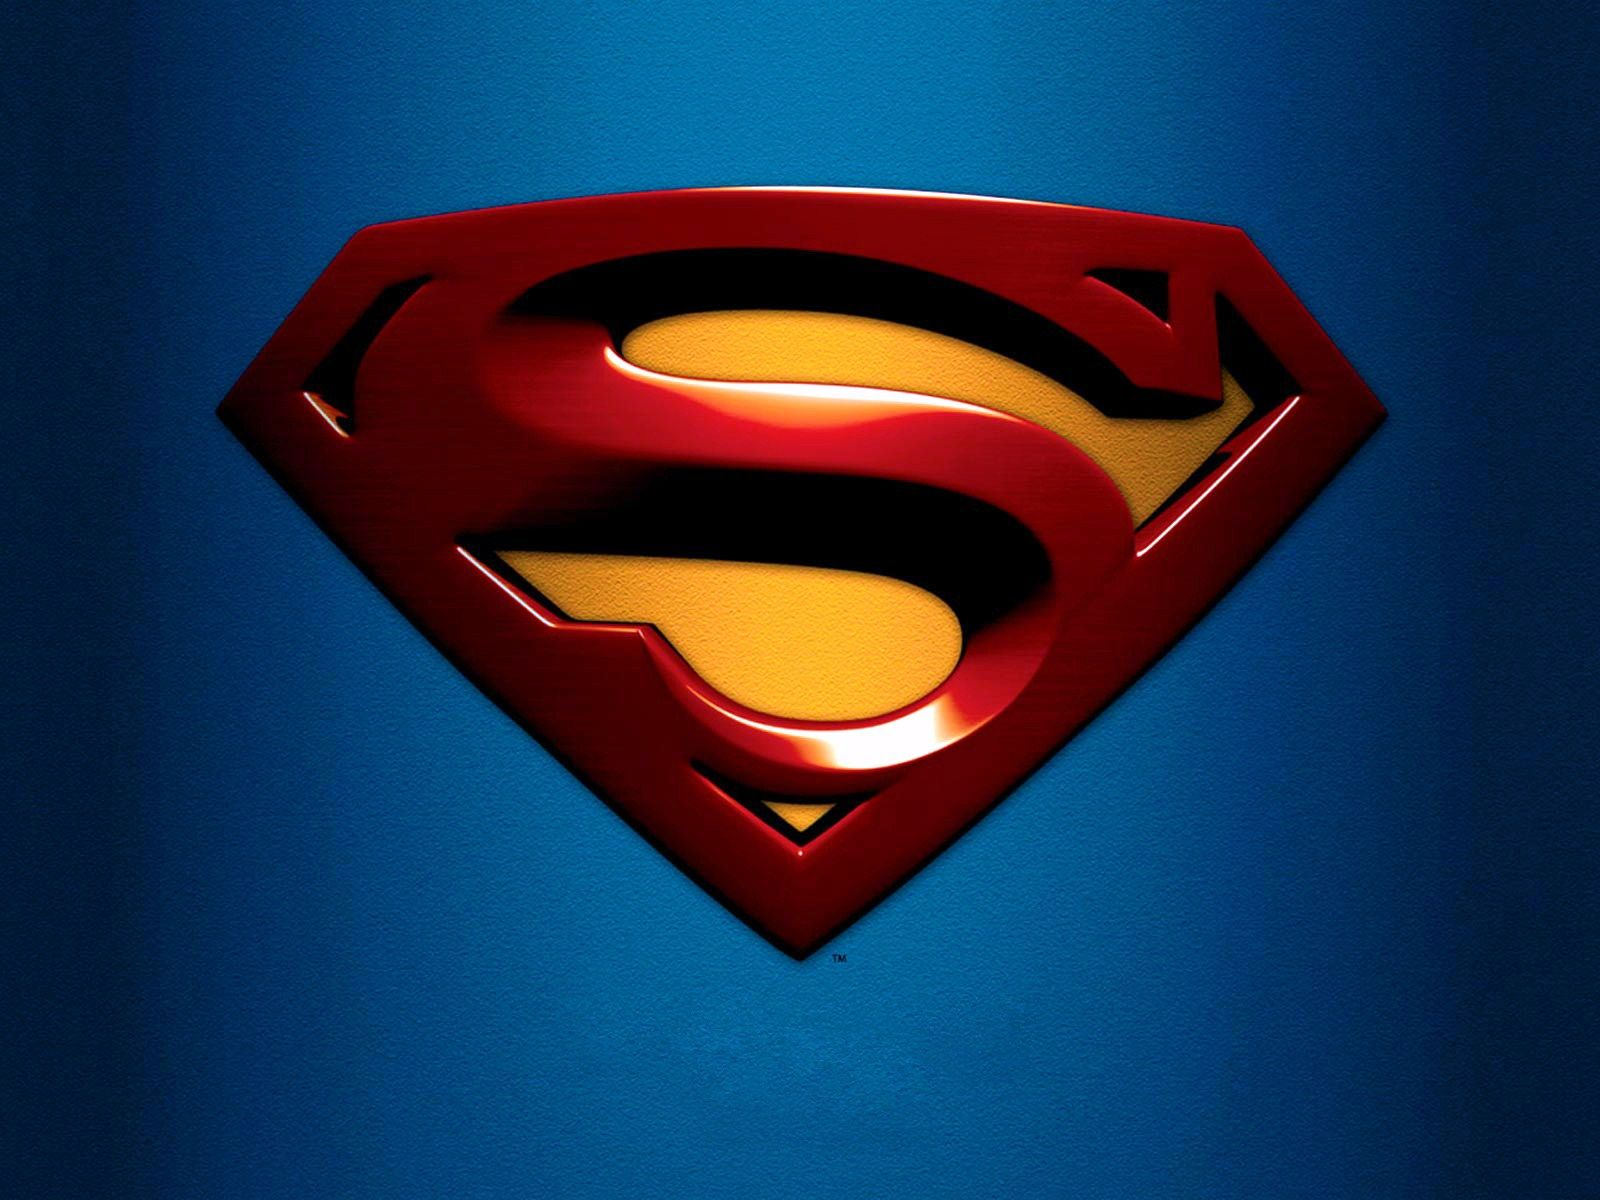 Cool superman logo wallpaper background 91264g 16001200 all cool superman logo wallpaper background 91264g 1600 buycottarizona Gallery